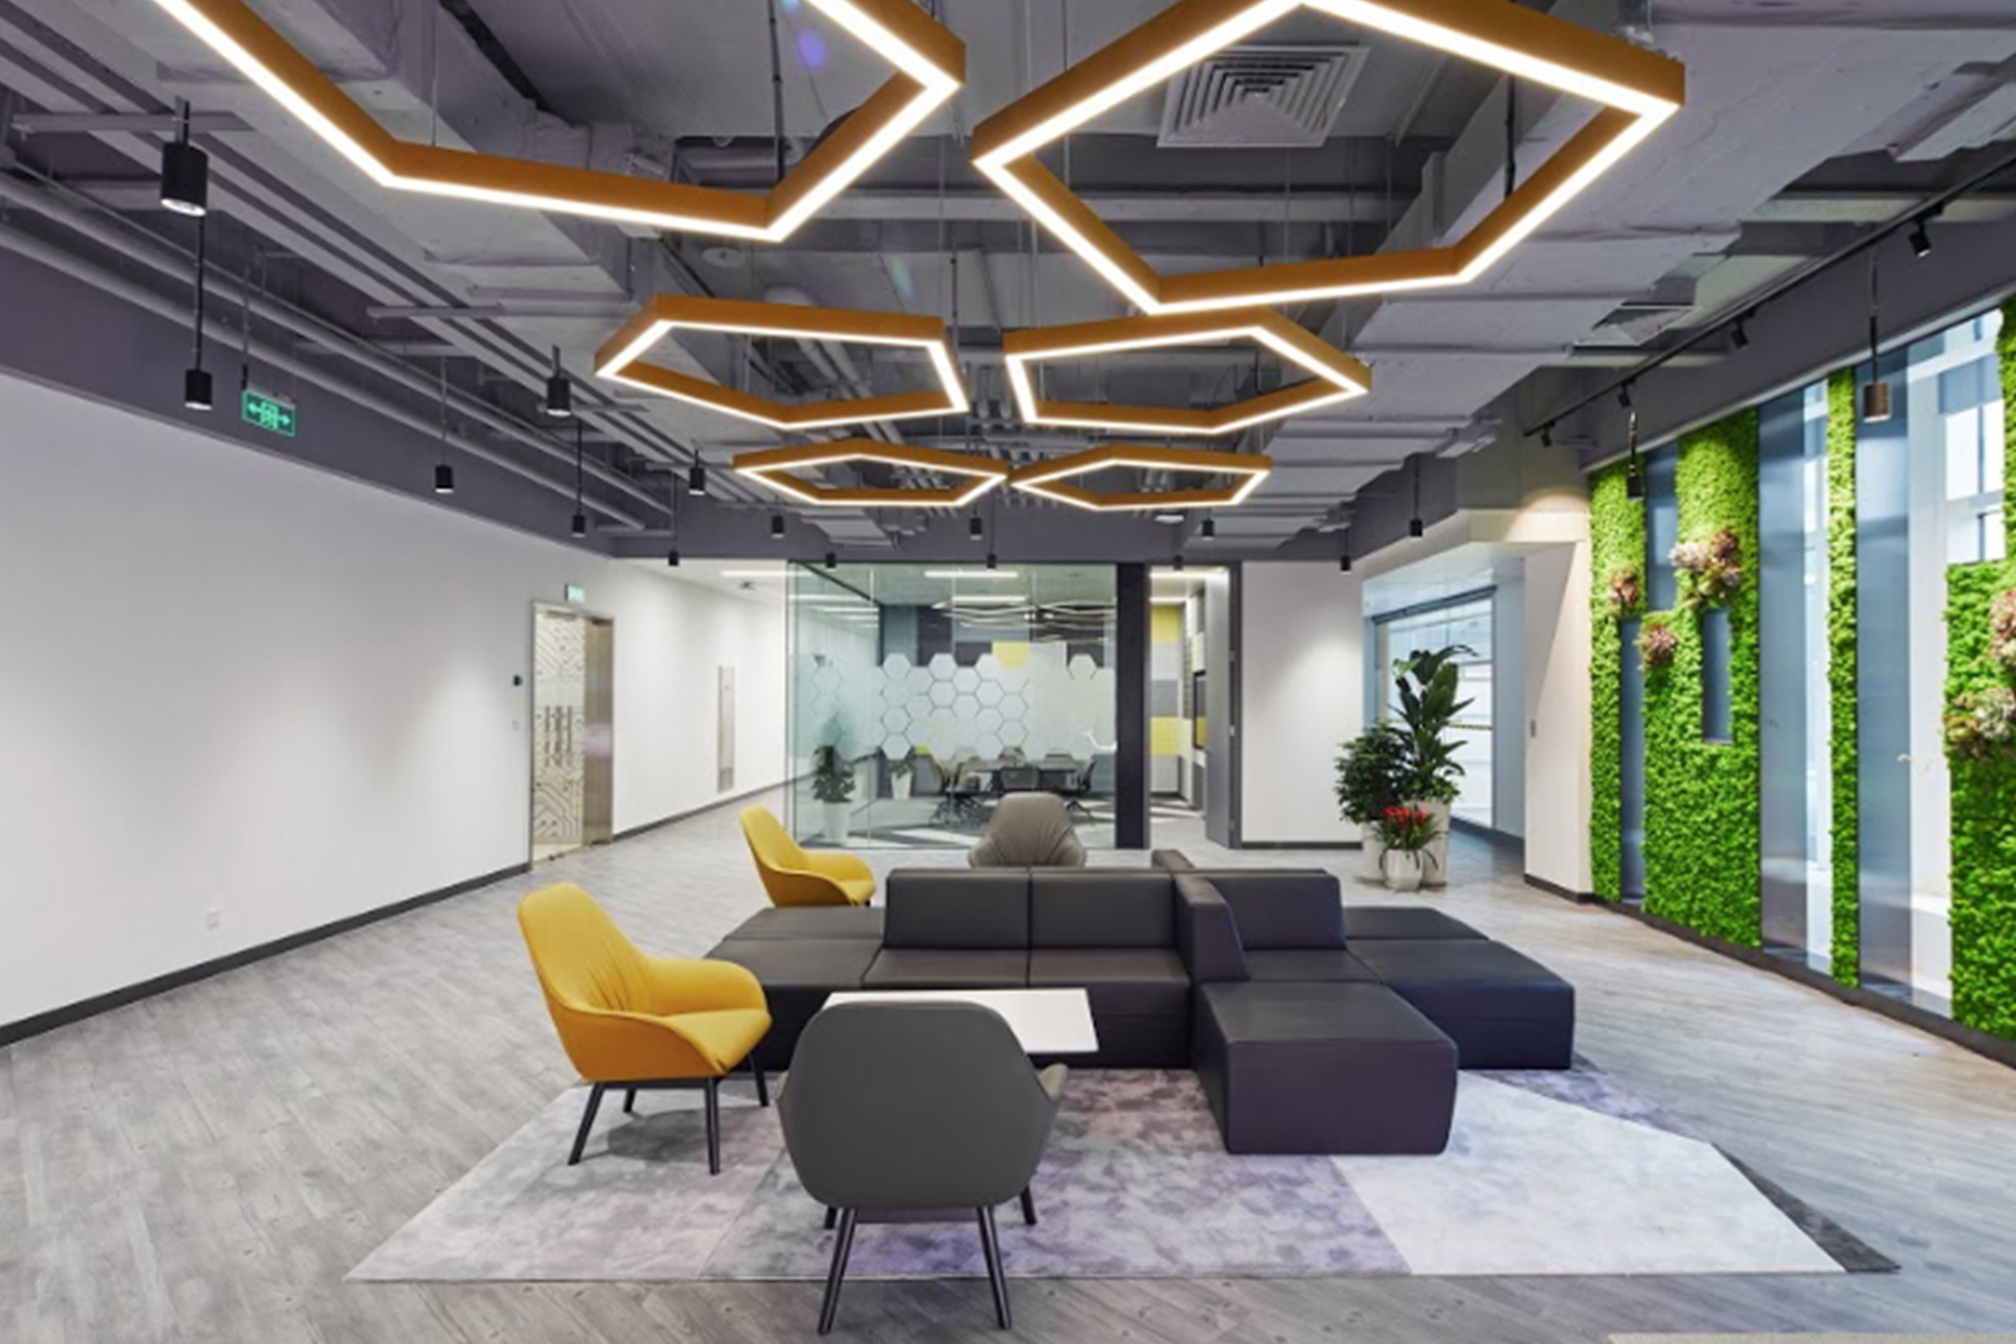 Singapore Office Interior Design Trends And Themes